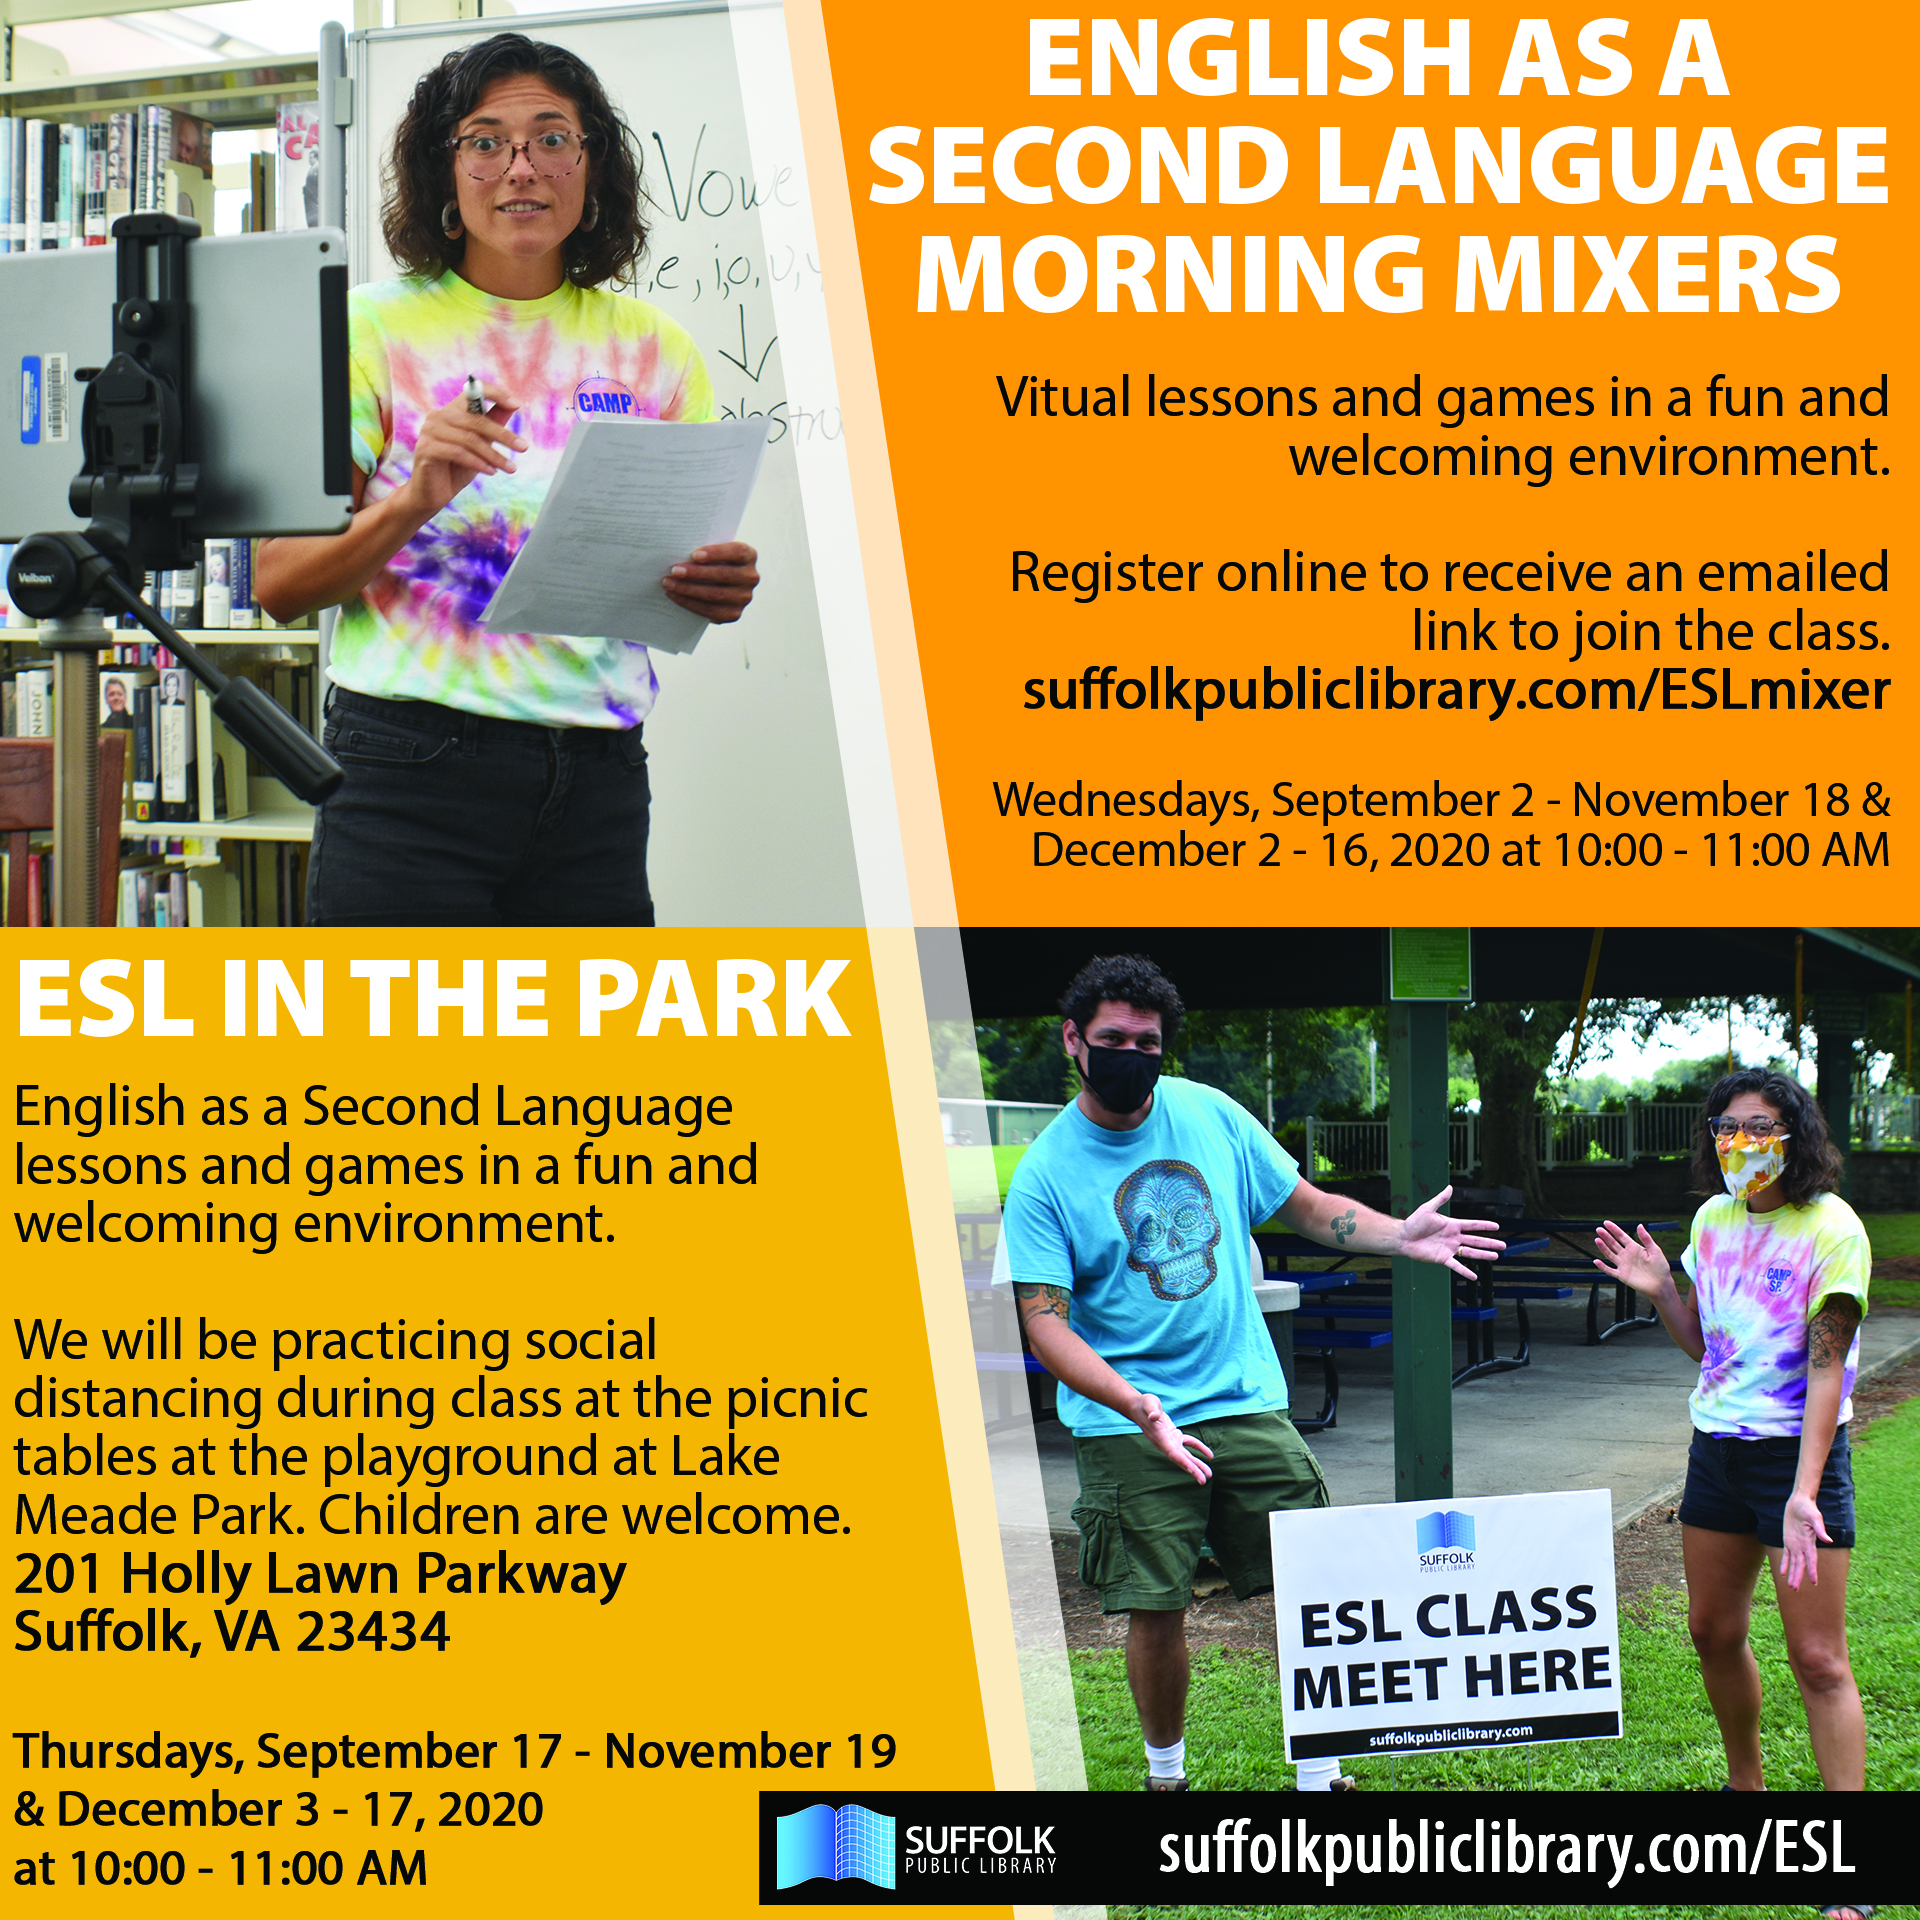 ESL in the Park